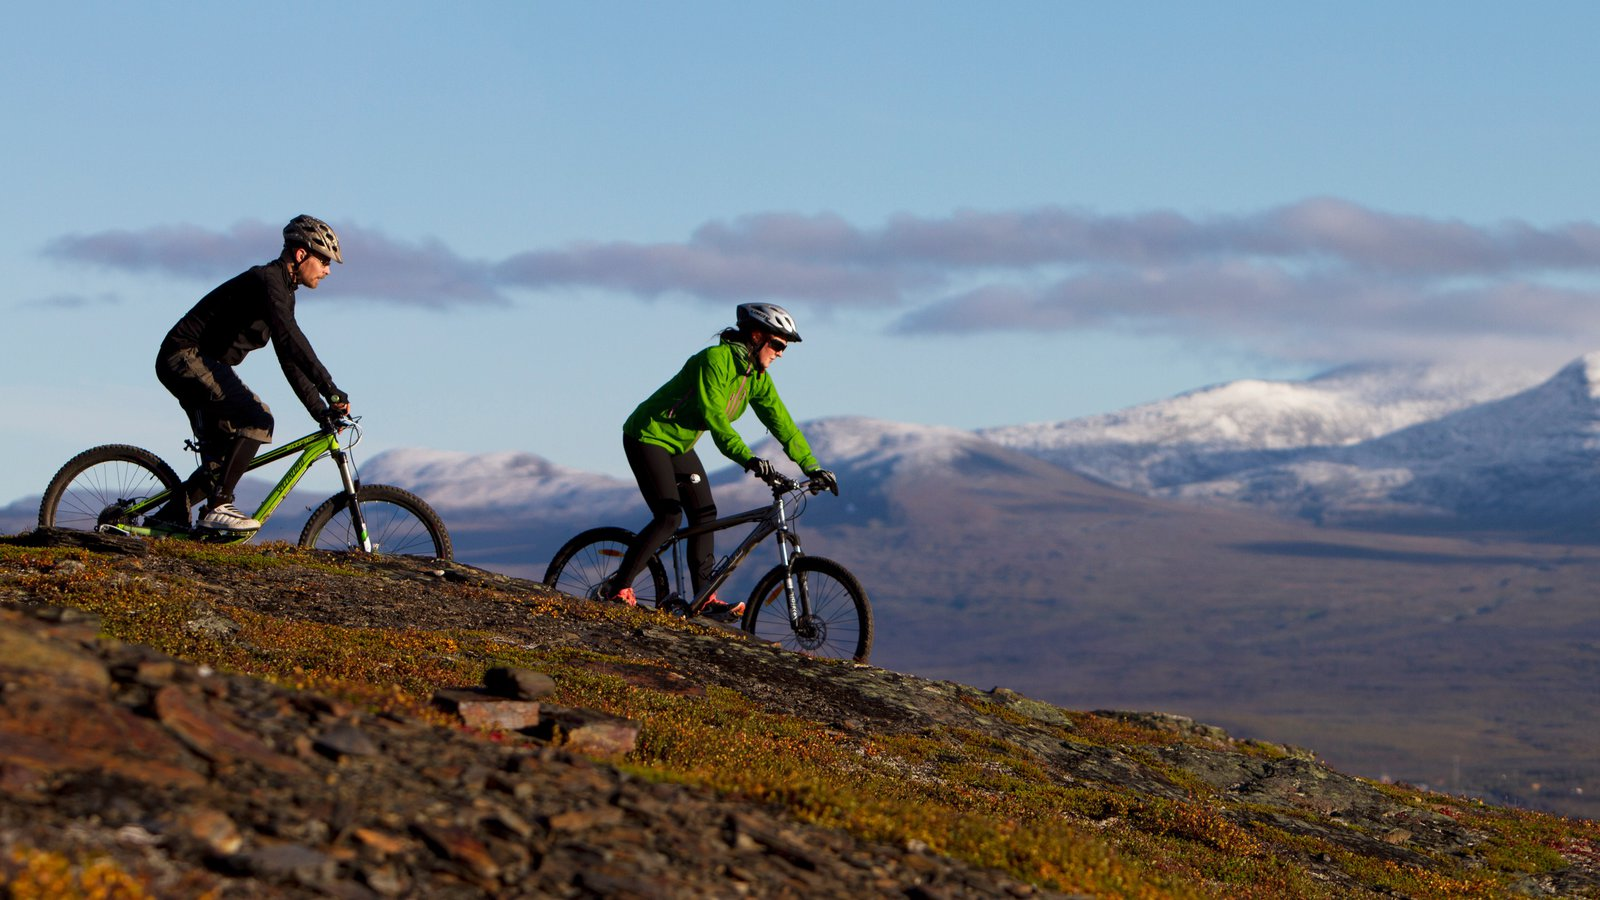 Bjorkliden Fjallby Ski Resort featuring mountain biking as well as a small group of people